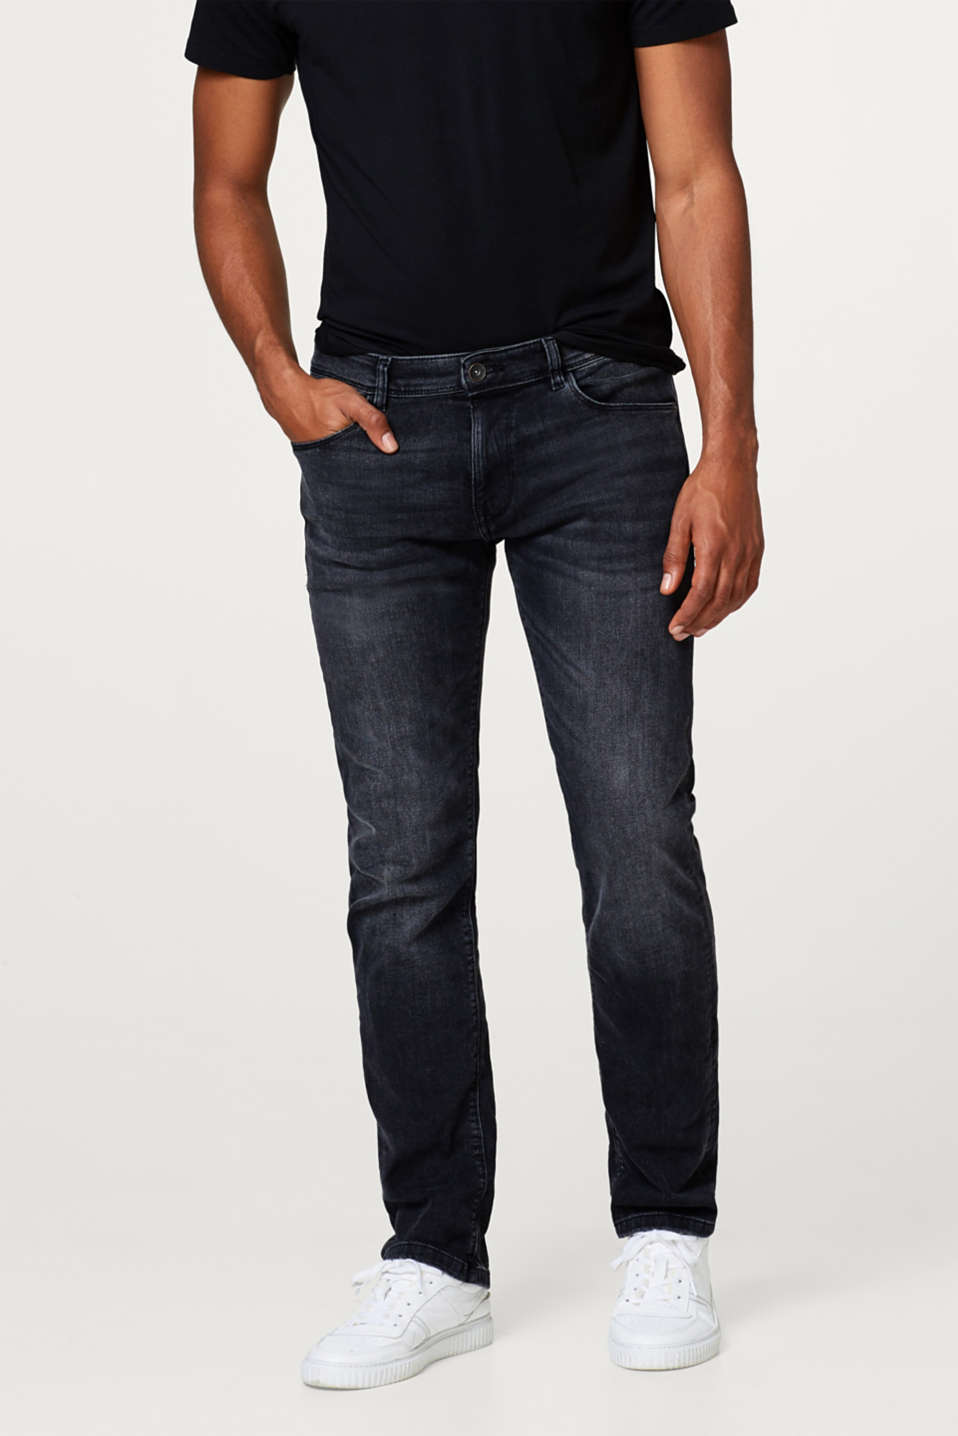 Esprit - Organic Cotton-Denim mit Super-Stretch